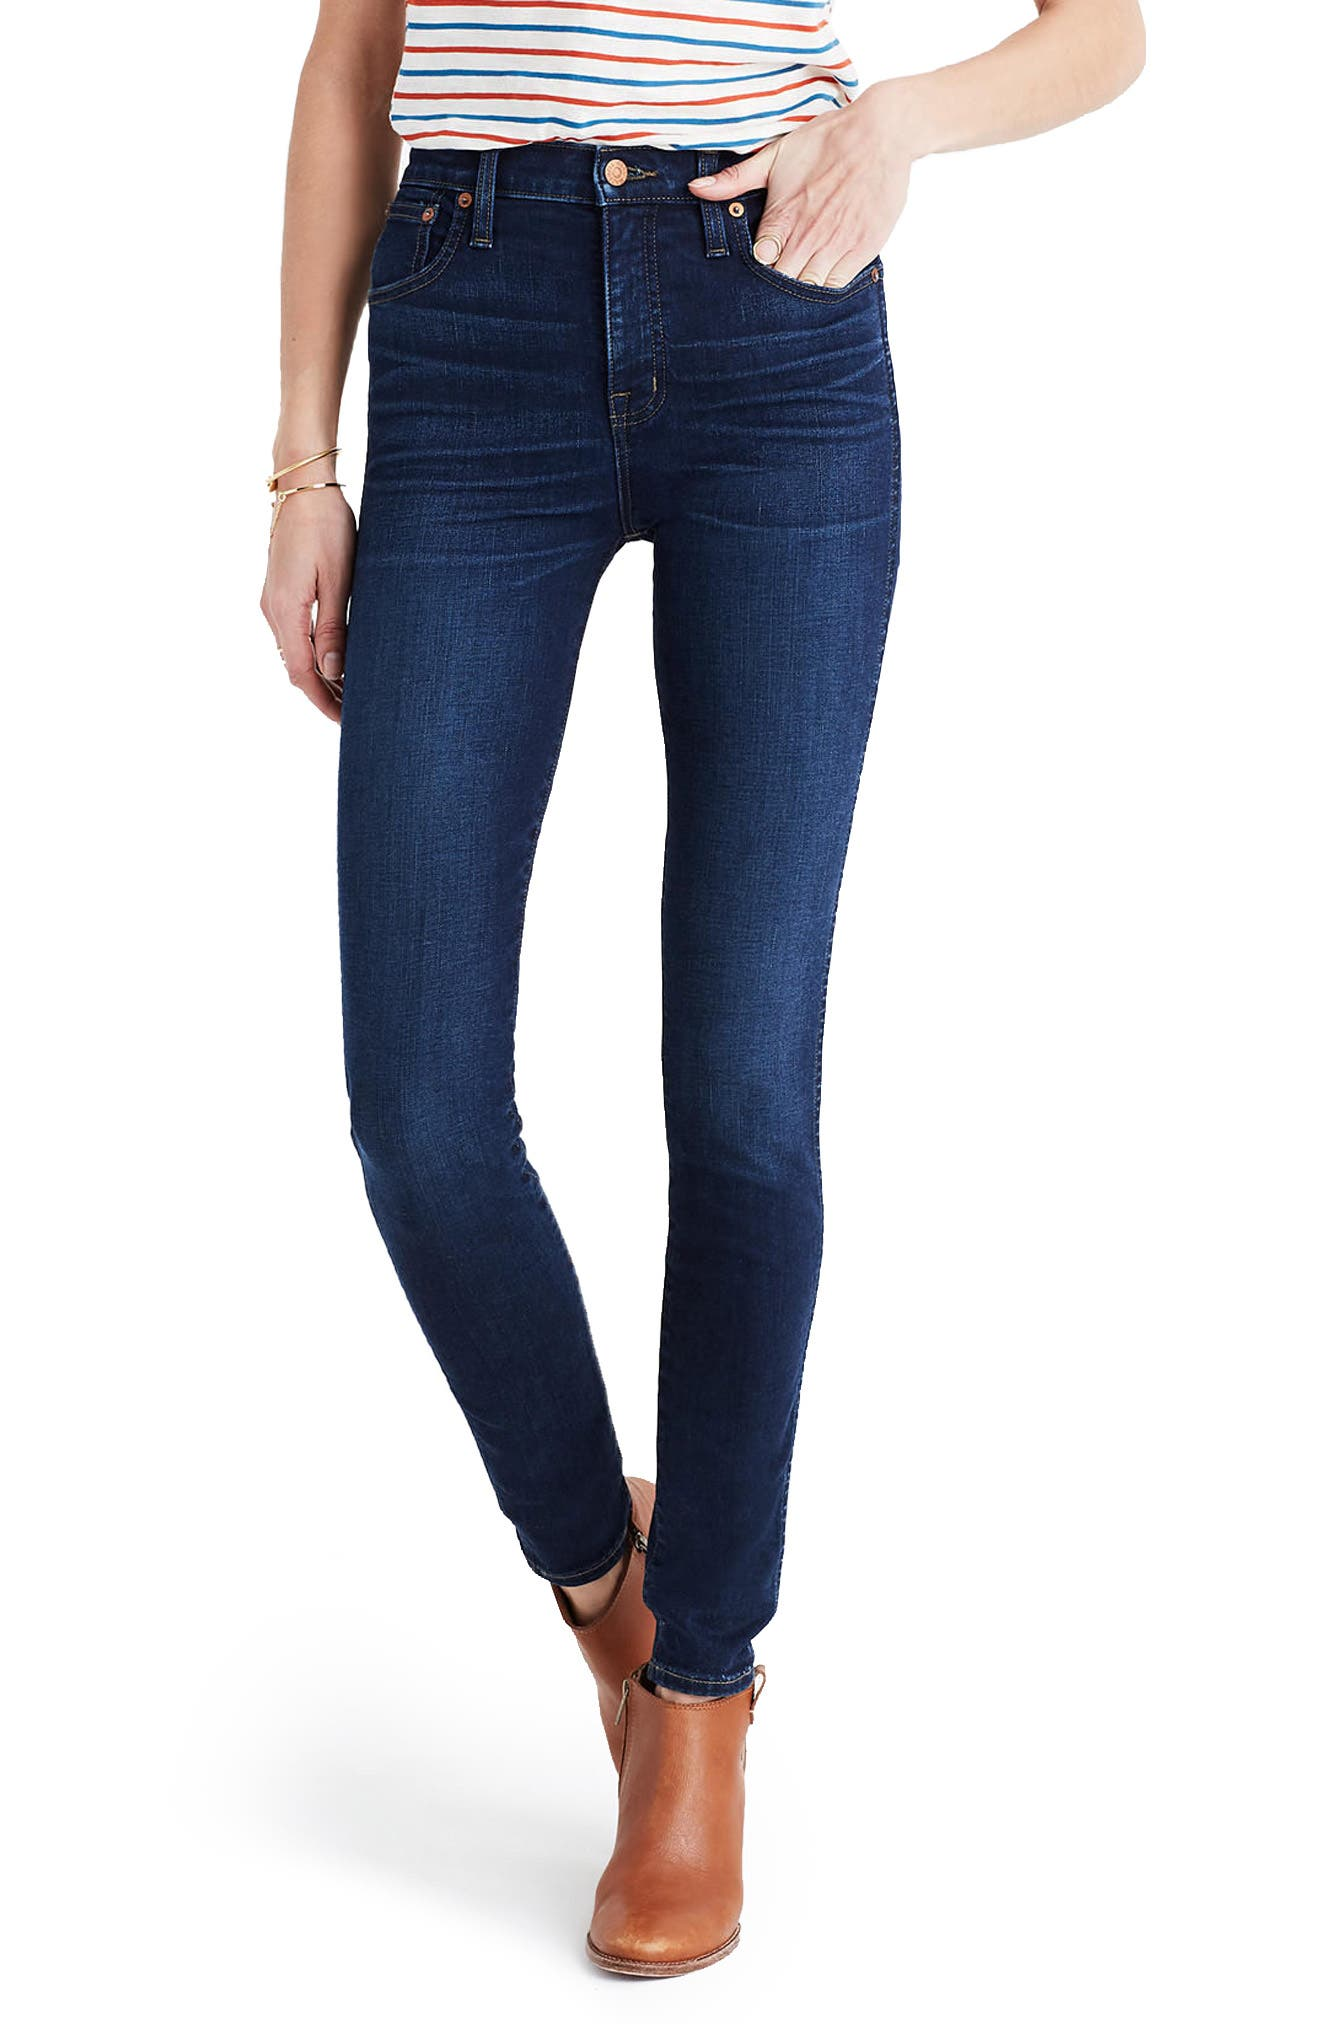 The best quality skinny jeans